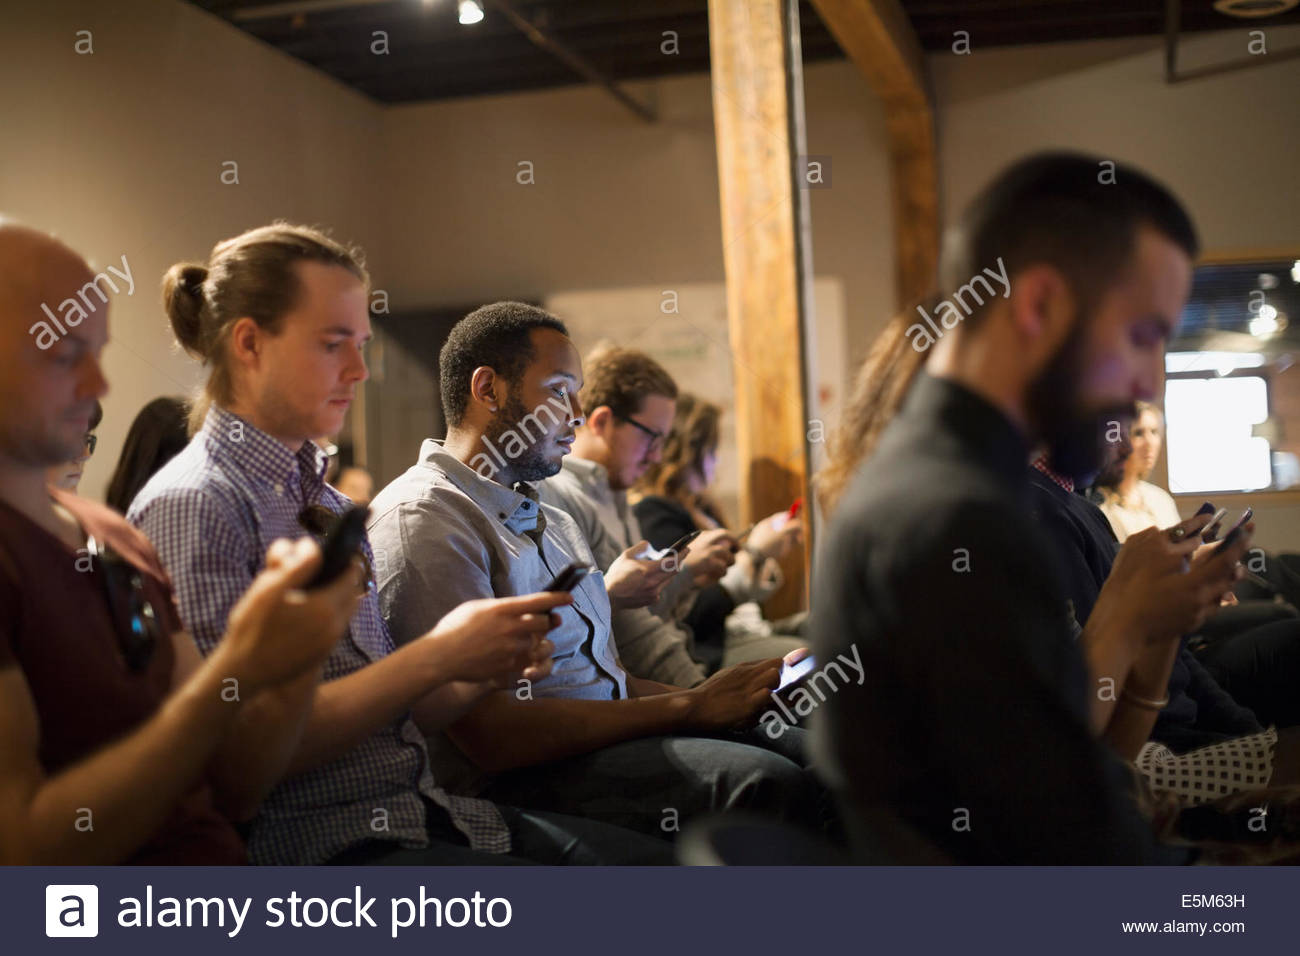 People in audience checking cell phones - Stock Image